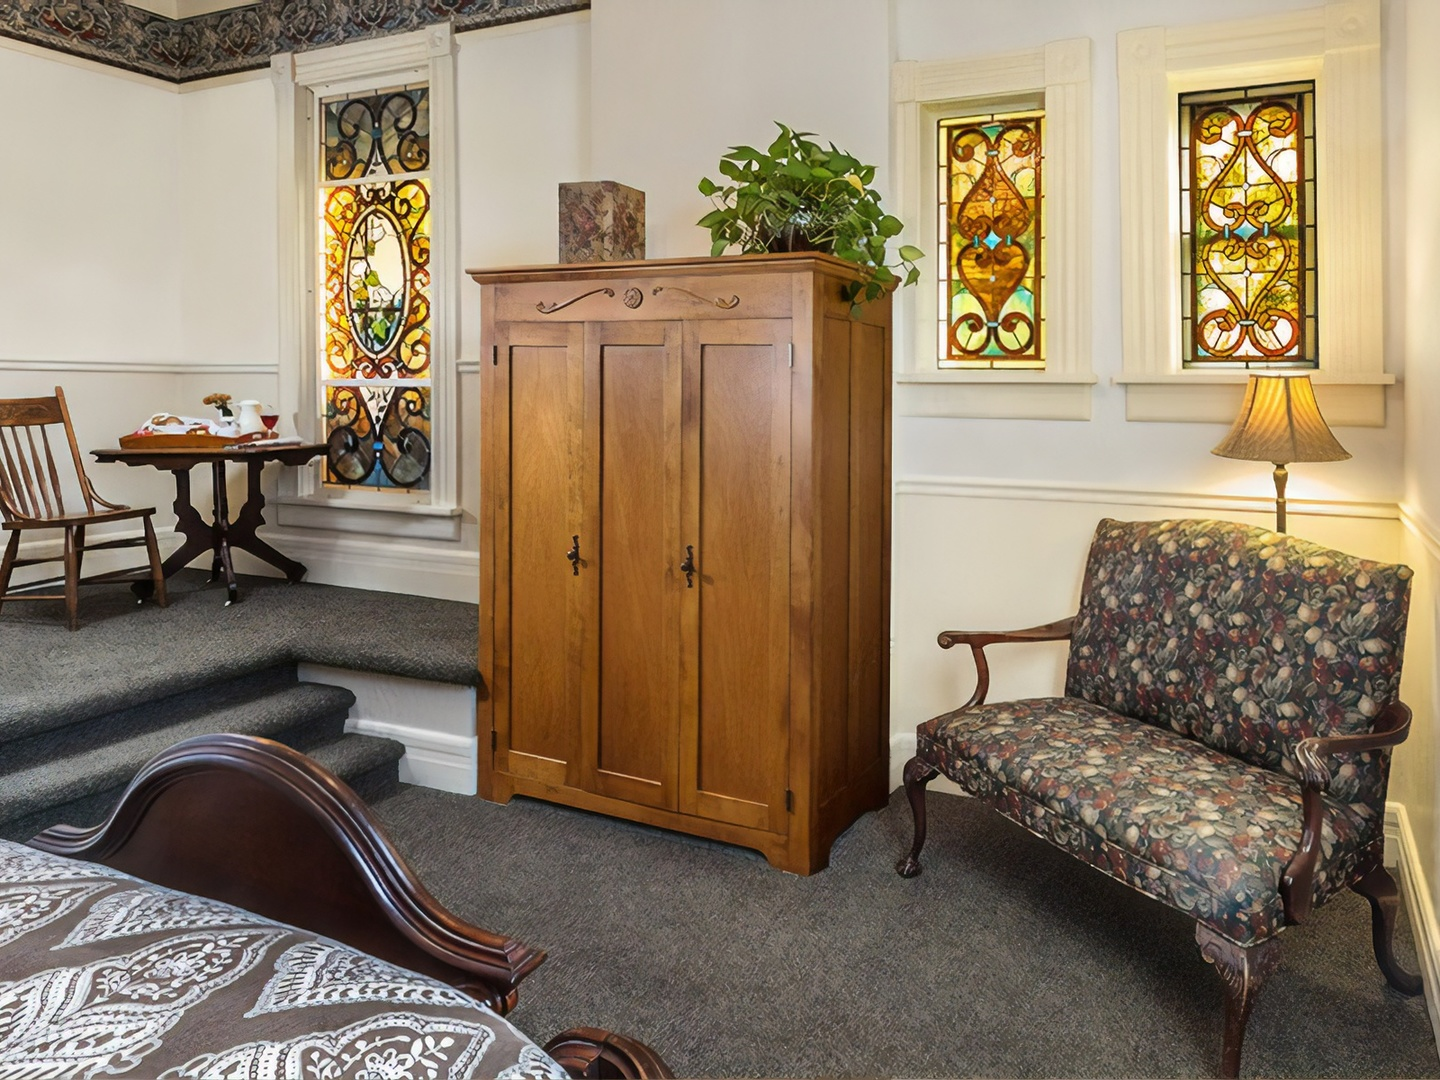 A living room filled with furniture and a tv at Washington House Inn.